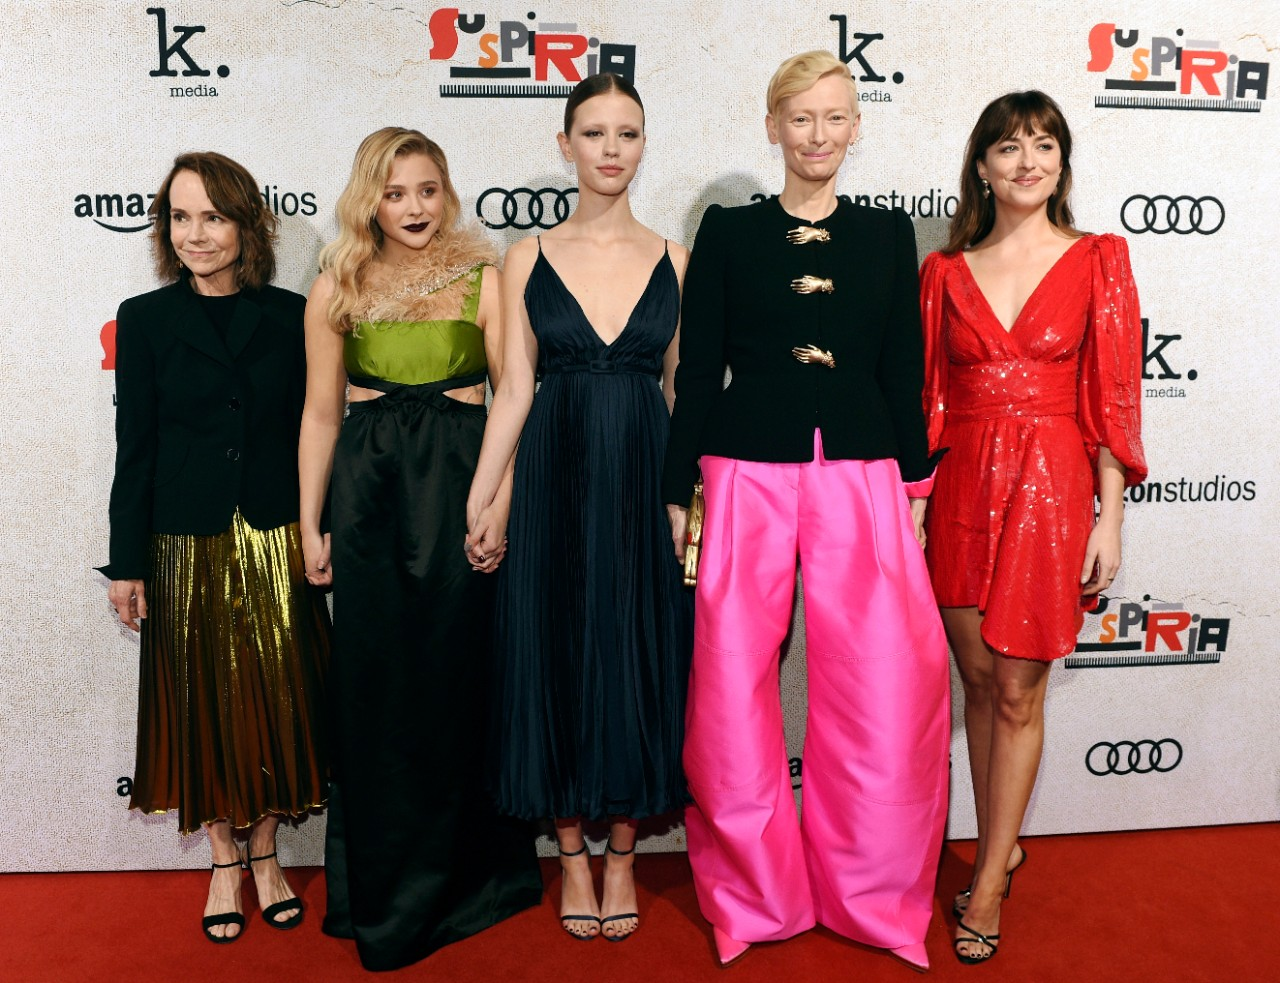 'Suspiria' cast members Jessica Harper, from left, Chloe Grace Moretz, Mia Goth, Tilda Swinton and Dakota Johnson at the ArcLight Hollywood in L.A., on Oct. 24, 2018. (Chris Pizzello / Invision / AP)